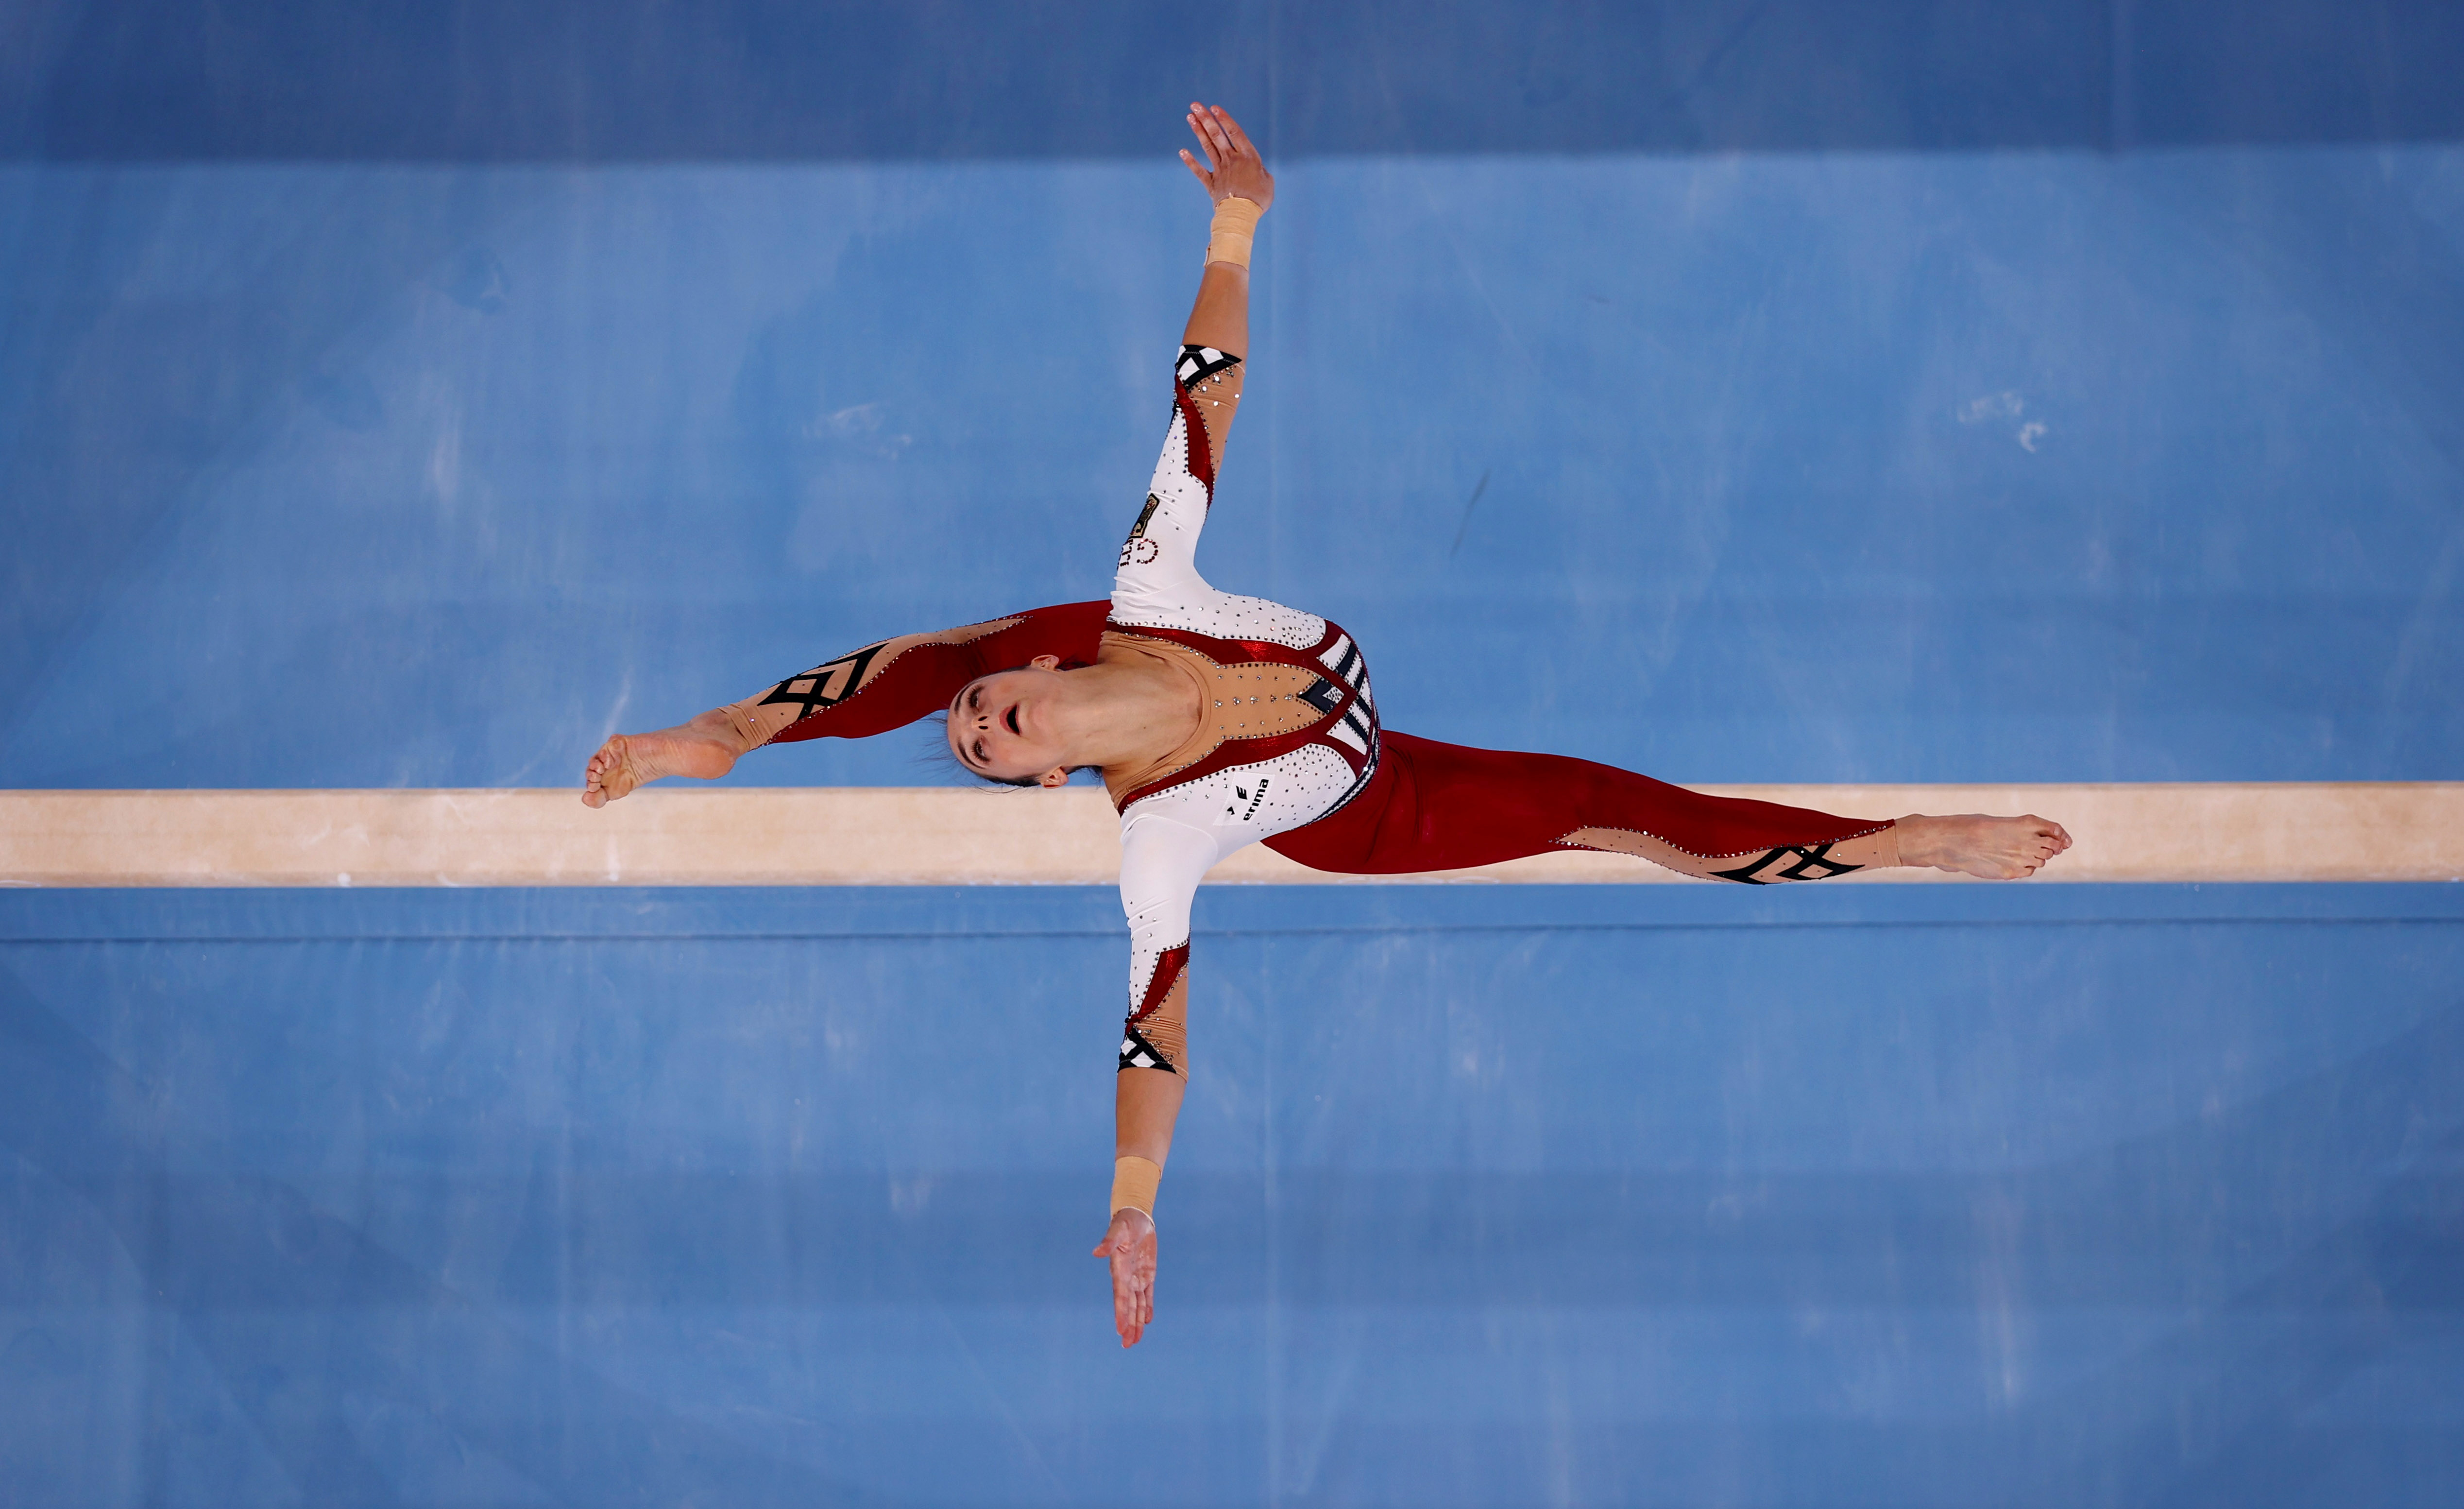 Tokyo 2020 Olympics - Gymnastics - Artistic - Women's Beam - Qualification - Ariake Gymnastics Centre, Tokyo, Japan - July 25, 2021.   Pauline Schaefer of Germany in action on the beam. REUTERS/Athit Perawongmetha